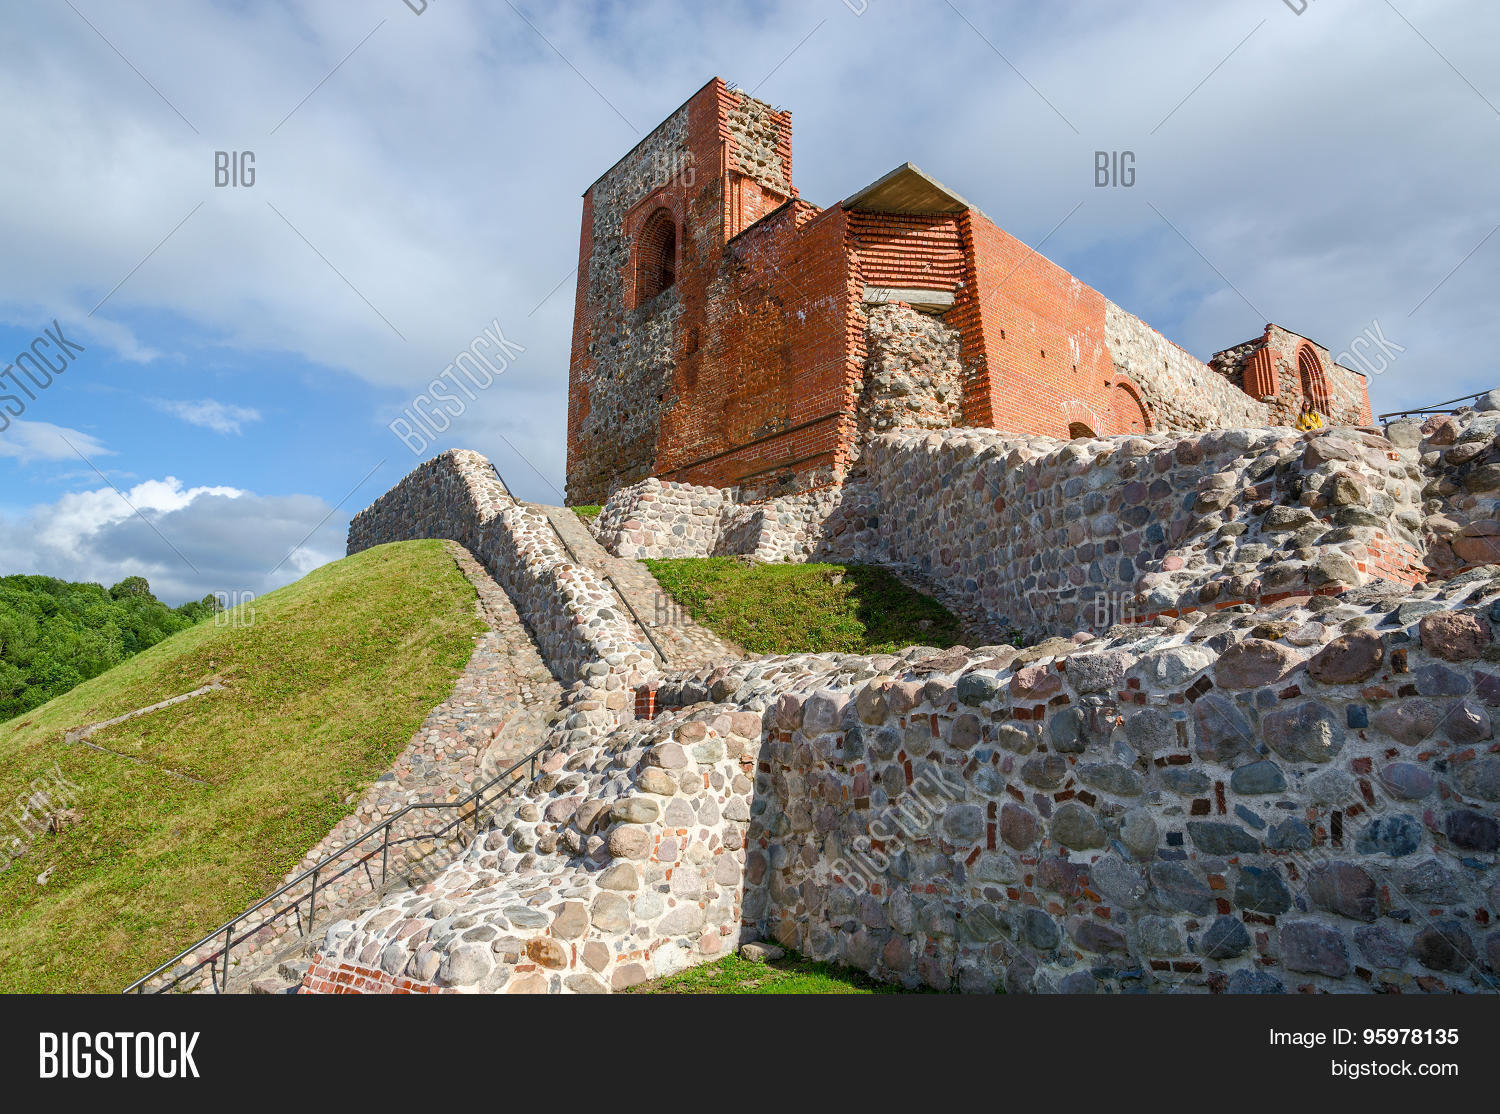 In Lithuania, found the ruins of the legendary castle of suicides